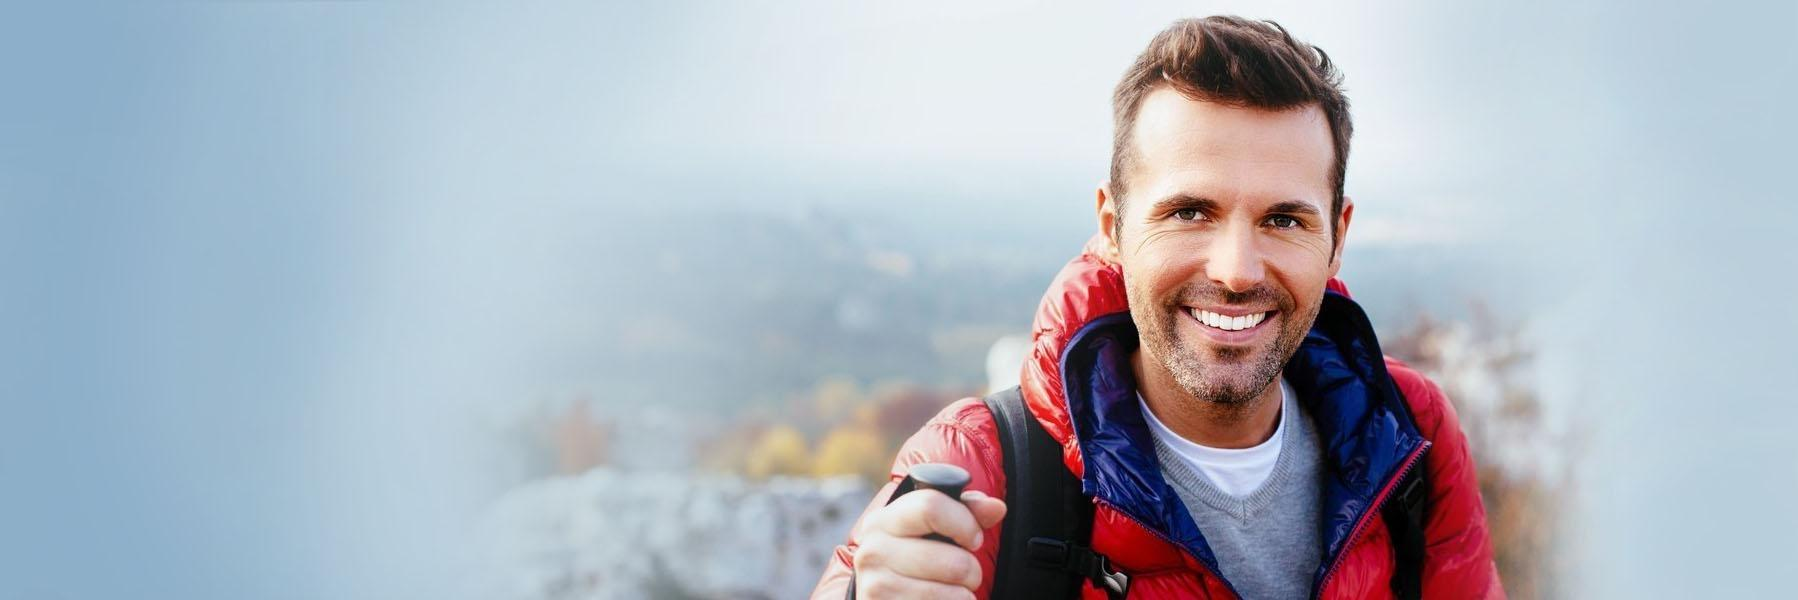 Man hiking and smiling l Cosmetic Dentist Temple TX